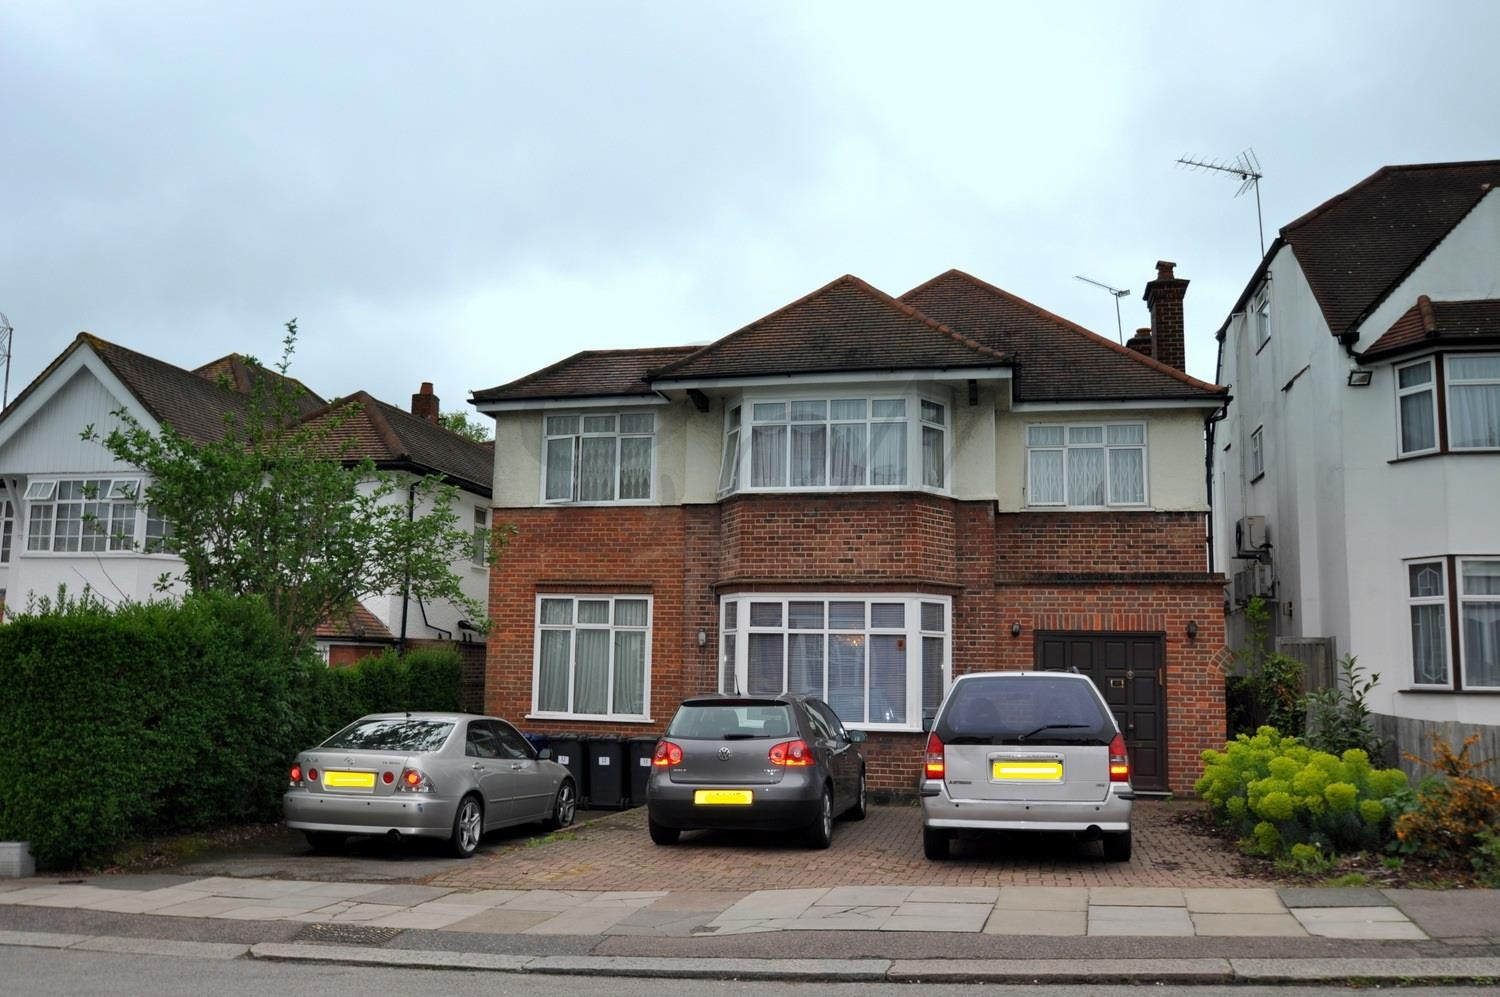 Park Way, Golders Green, NW11